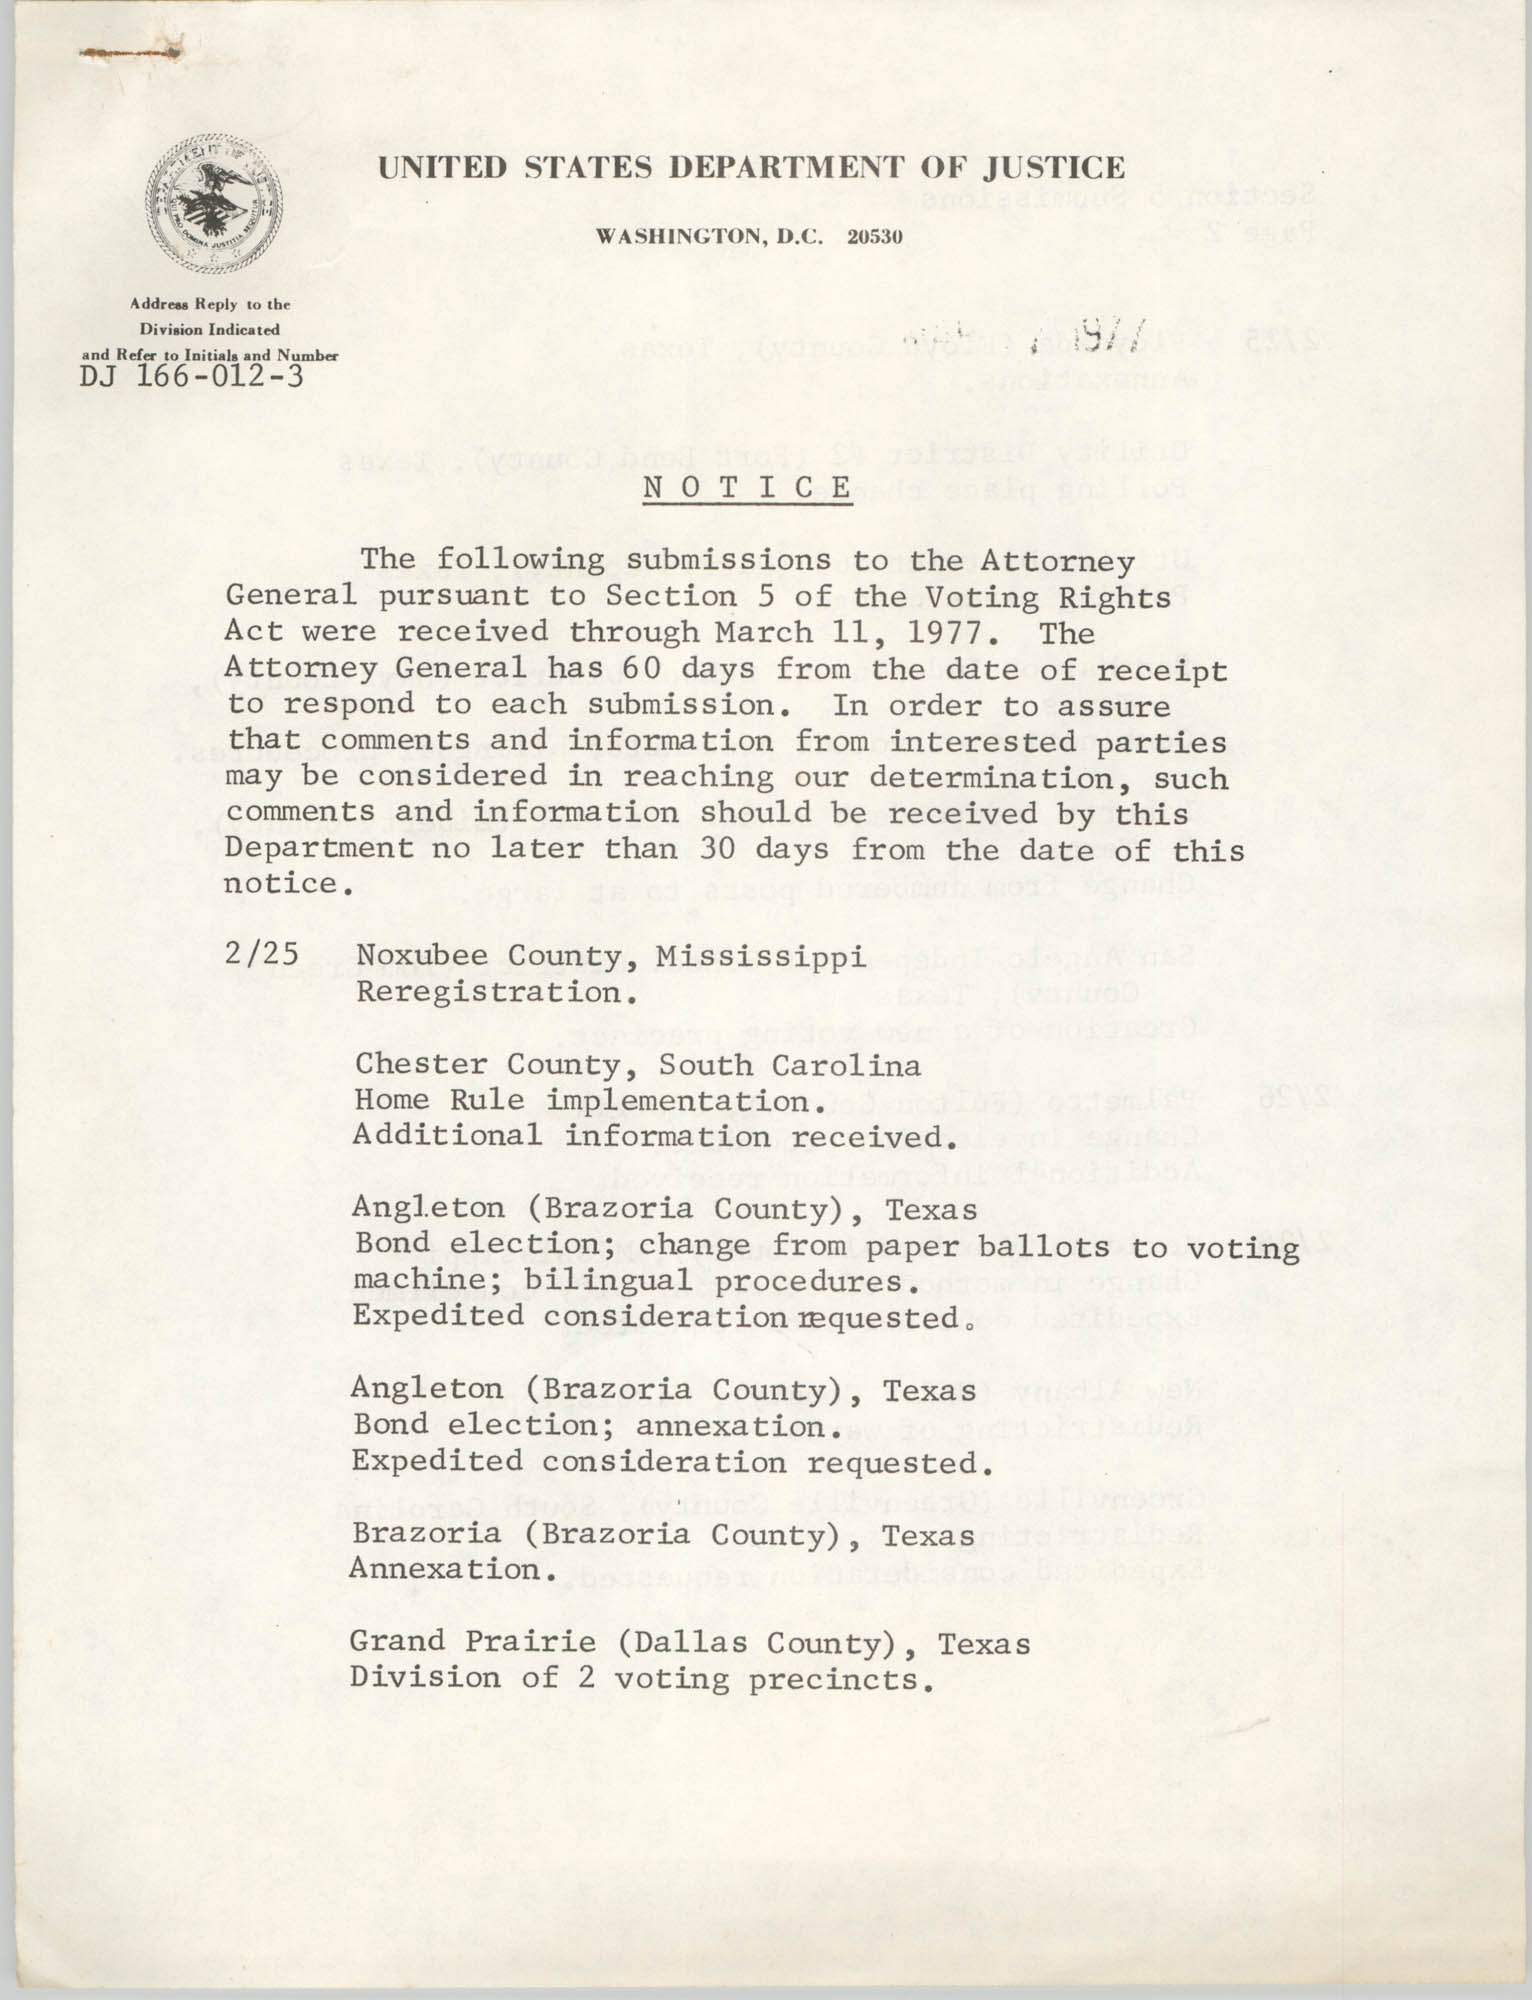 United States Department of Justice Notice, March 11, 1977, Page 1